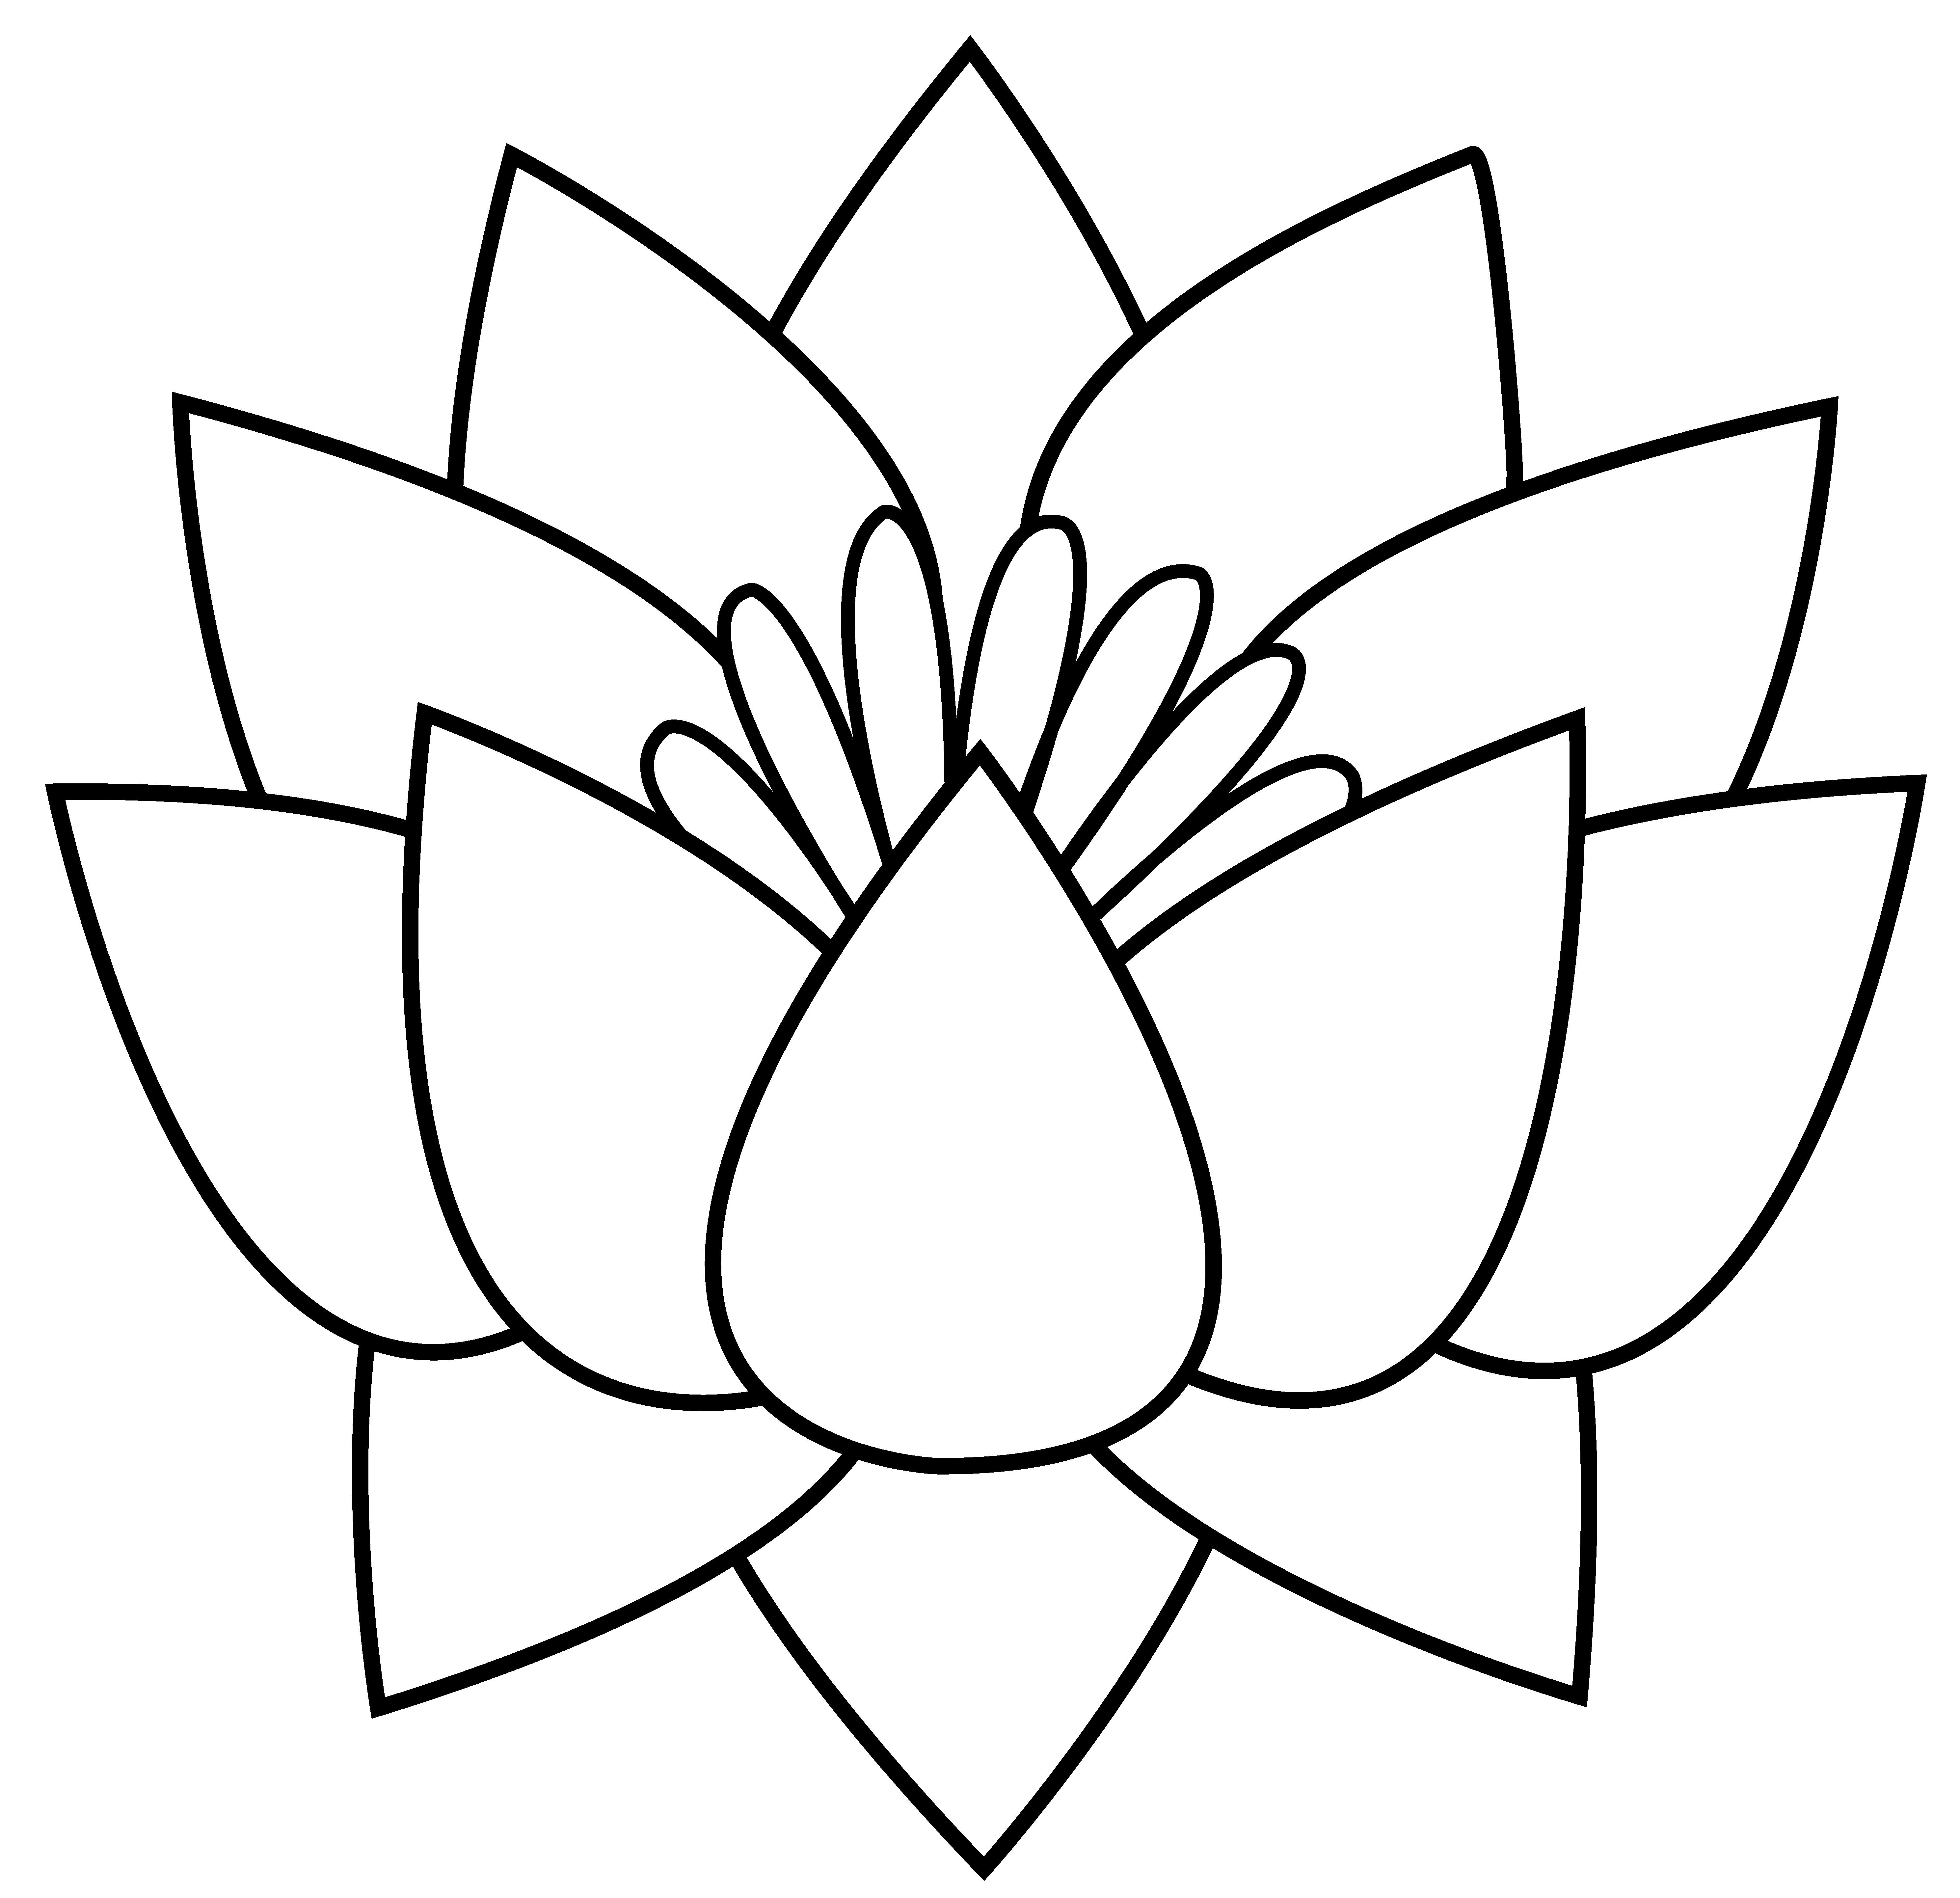 pin Drawn line art lotus flower #5 - Lotus Flower Black And White PNG